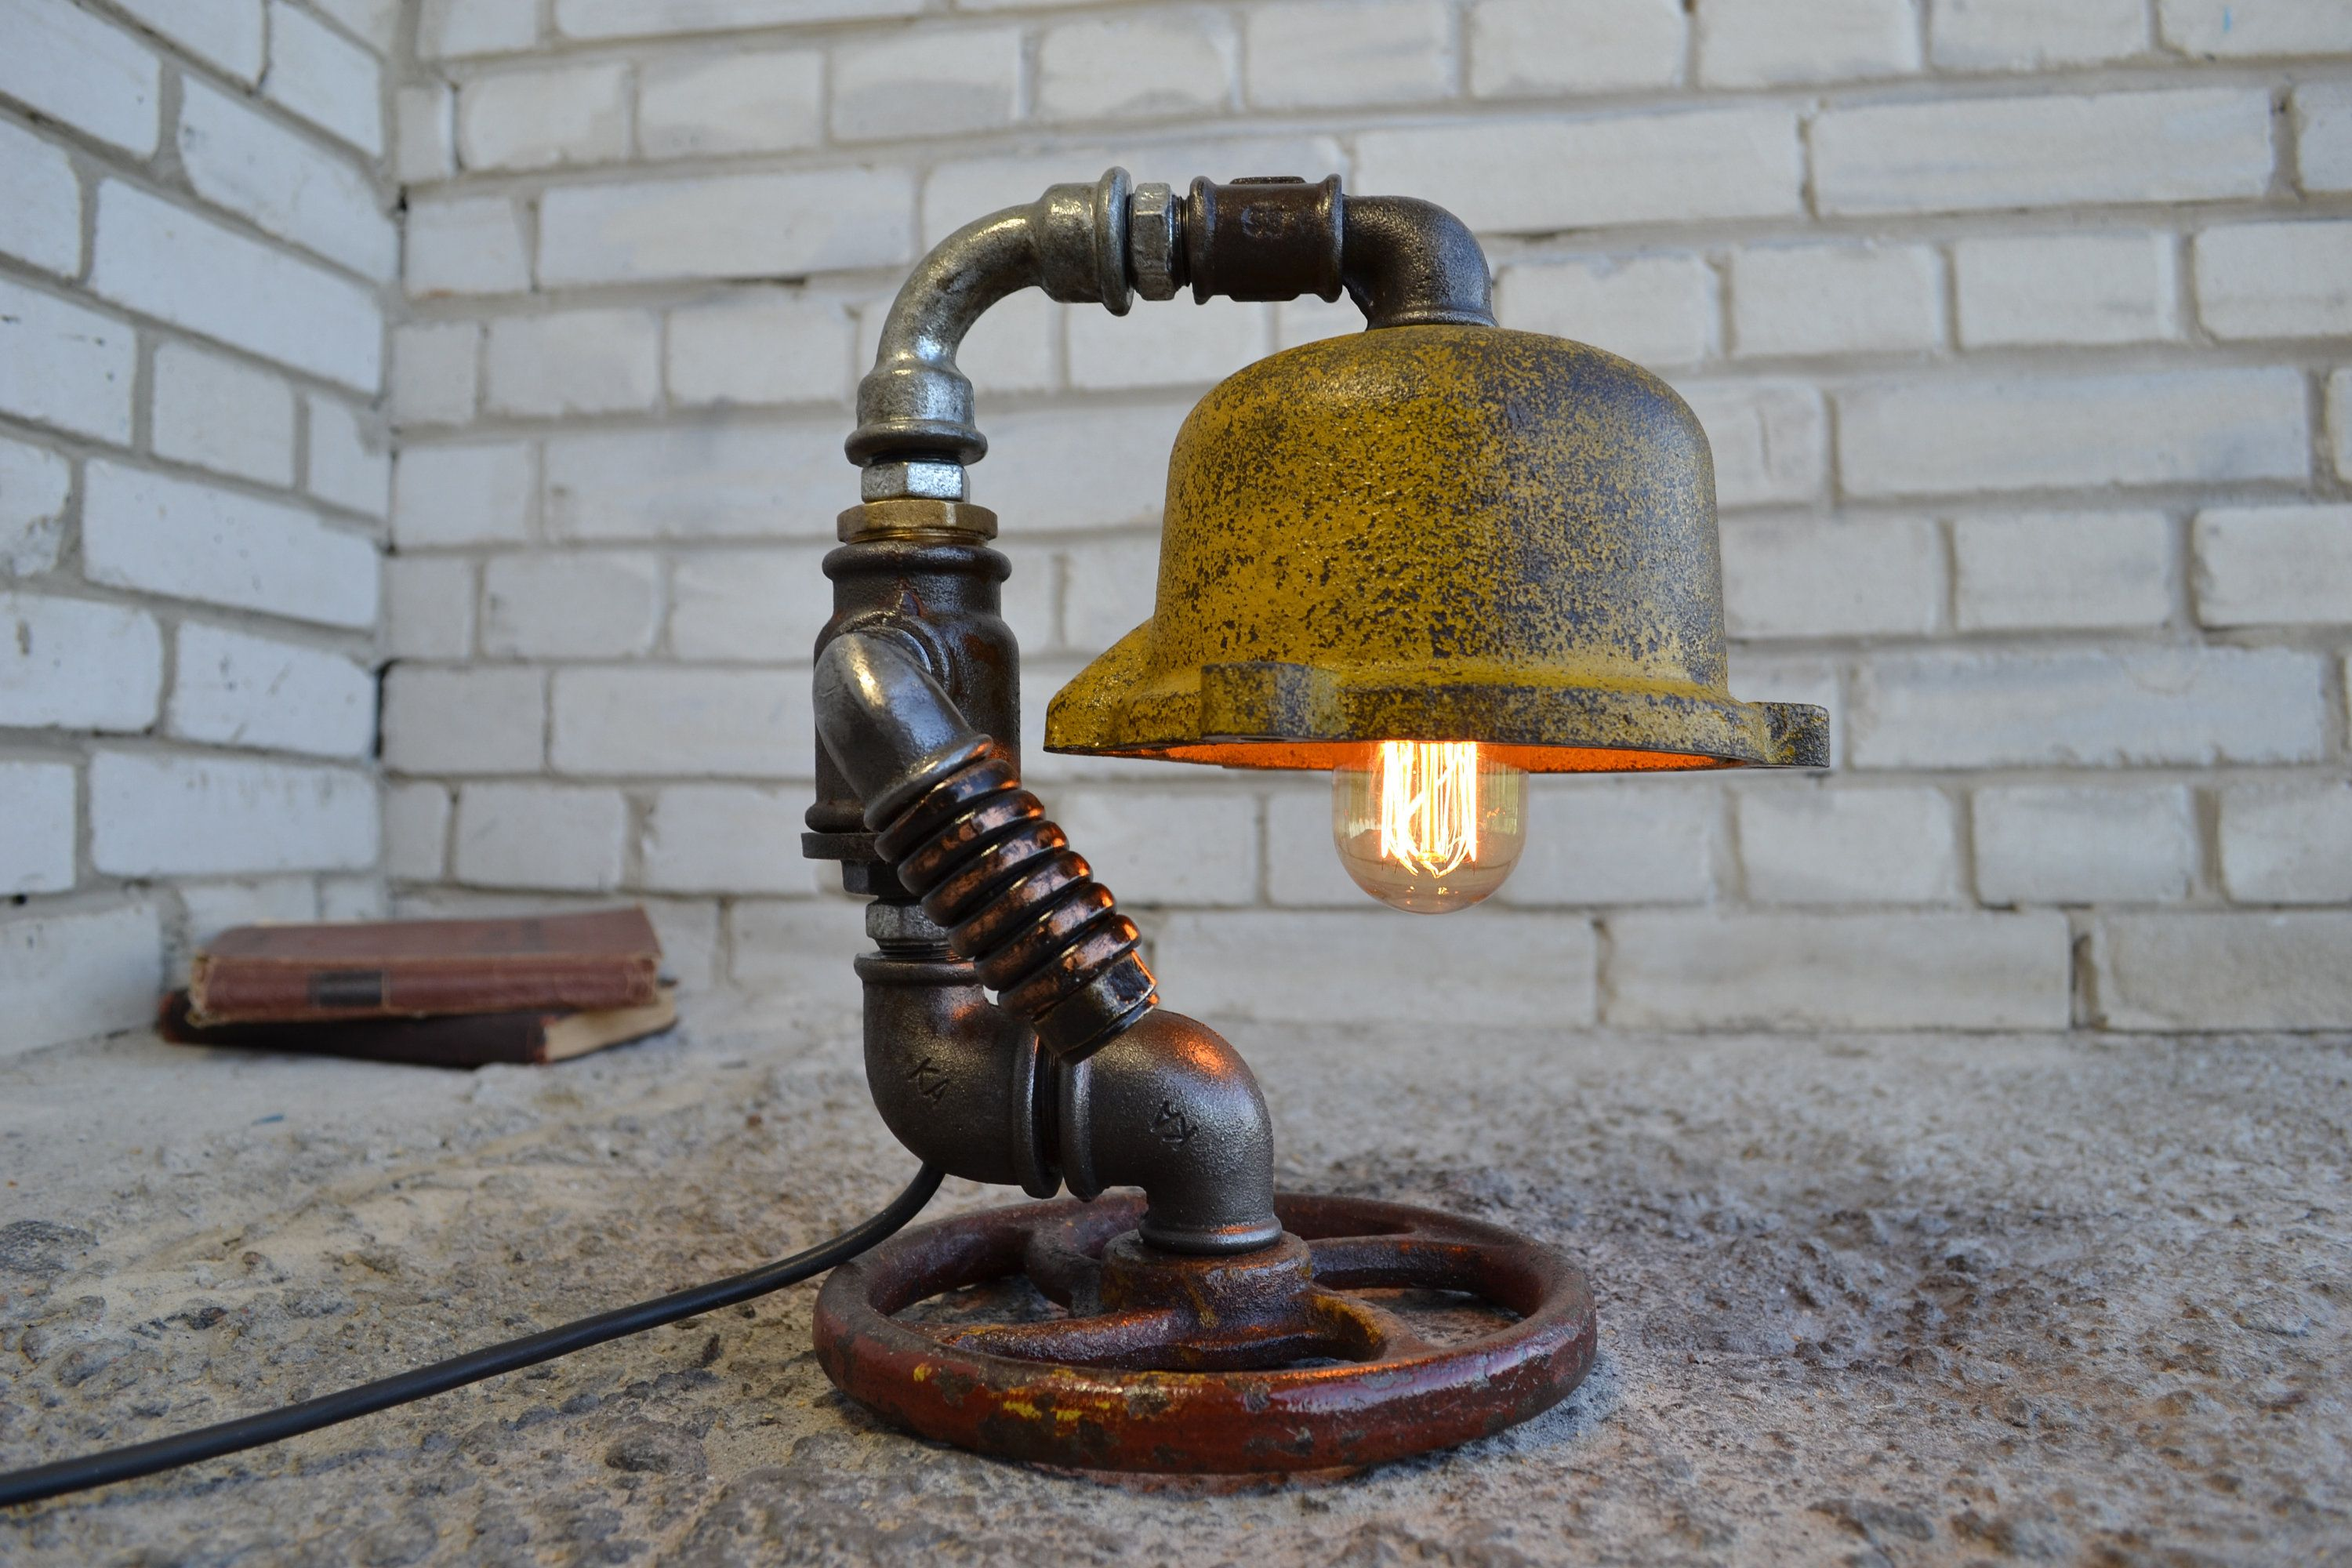 IndustrialStyle Steampunk lighting, from Old Parts